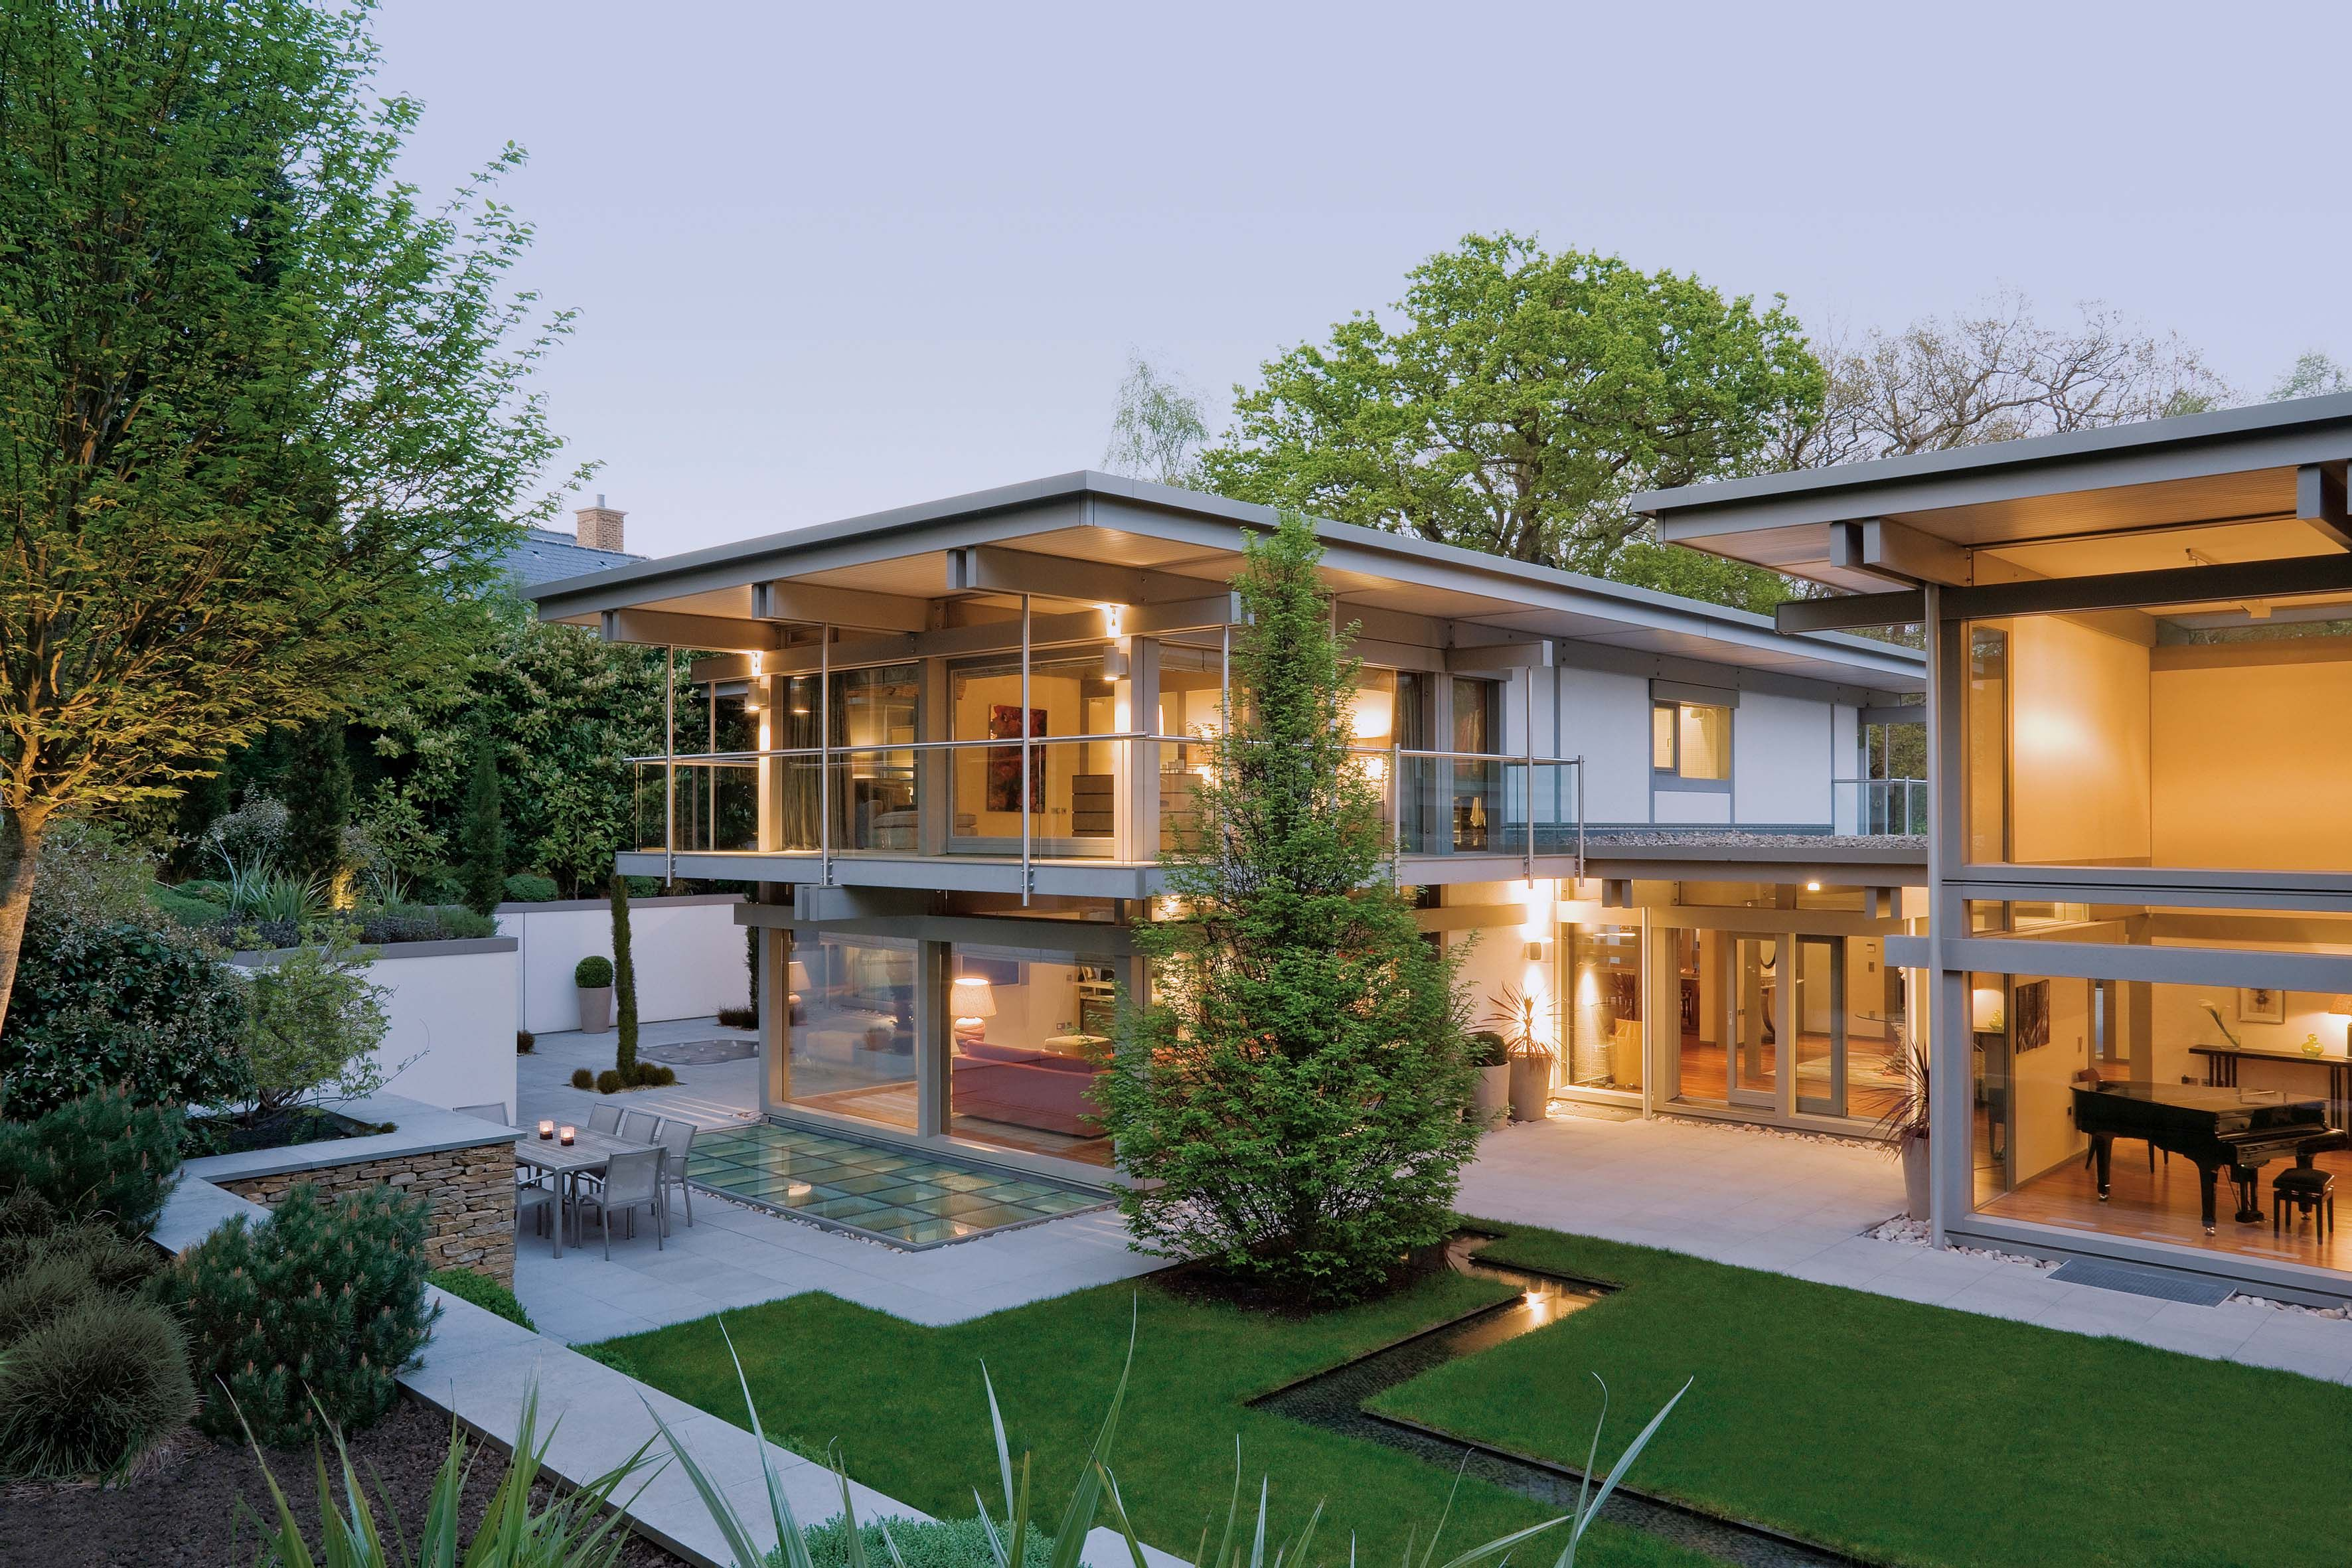 Fascinating Huf Haus Kosten Decoration Of Amazing Stunning With Pro Qm With